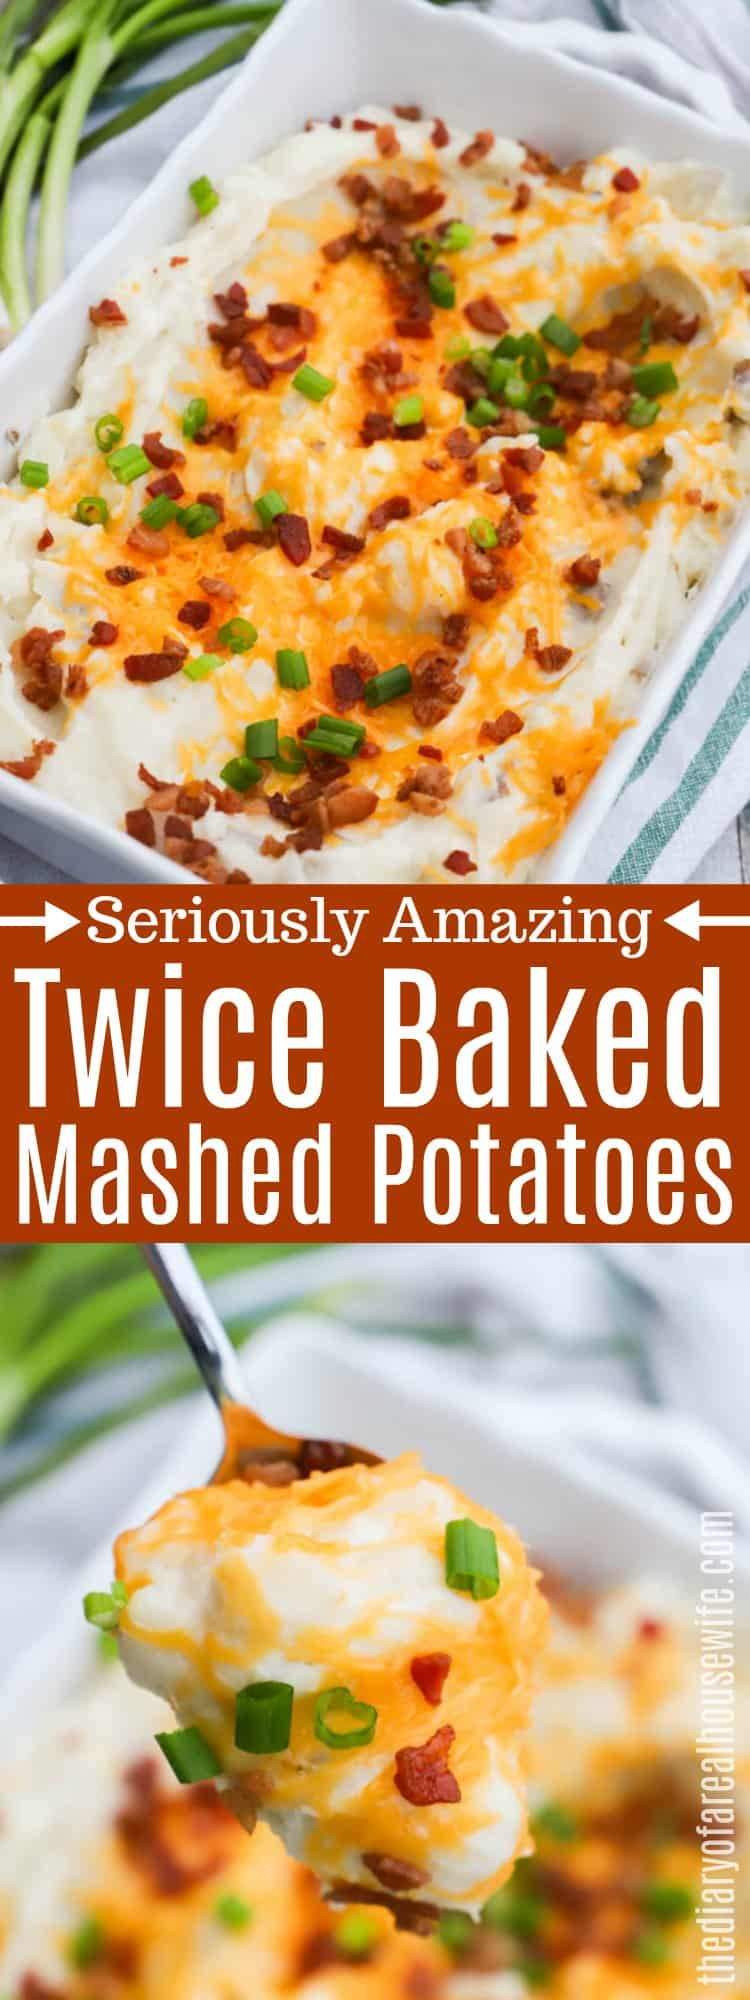 Twice Baked Mashed Potatoes